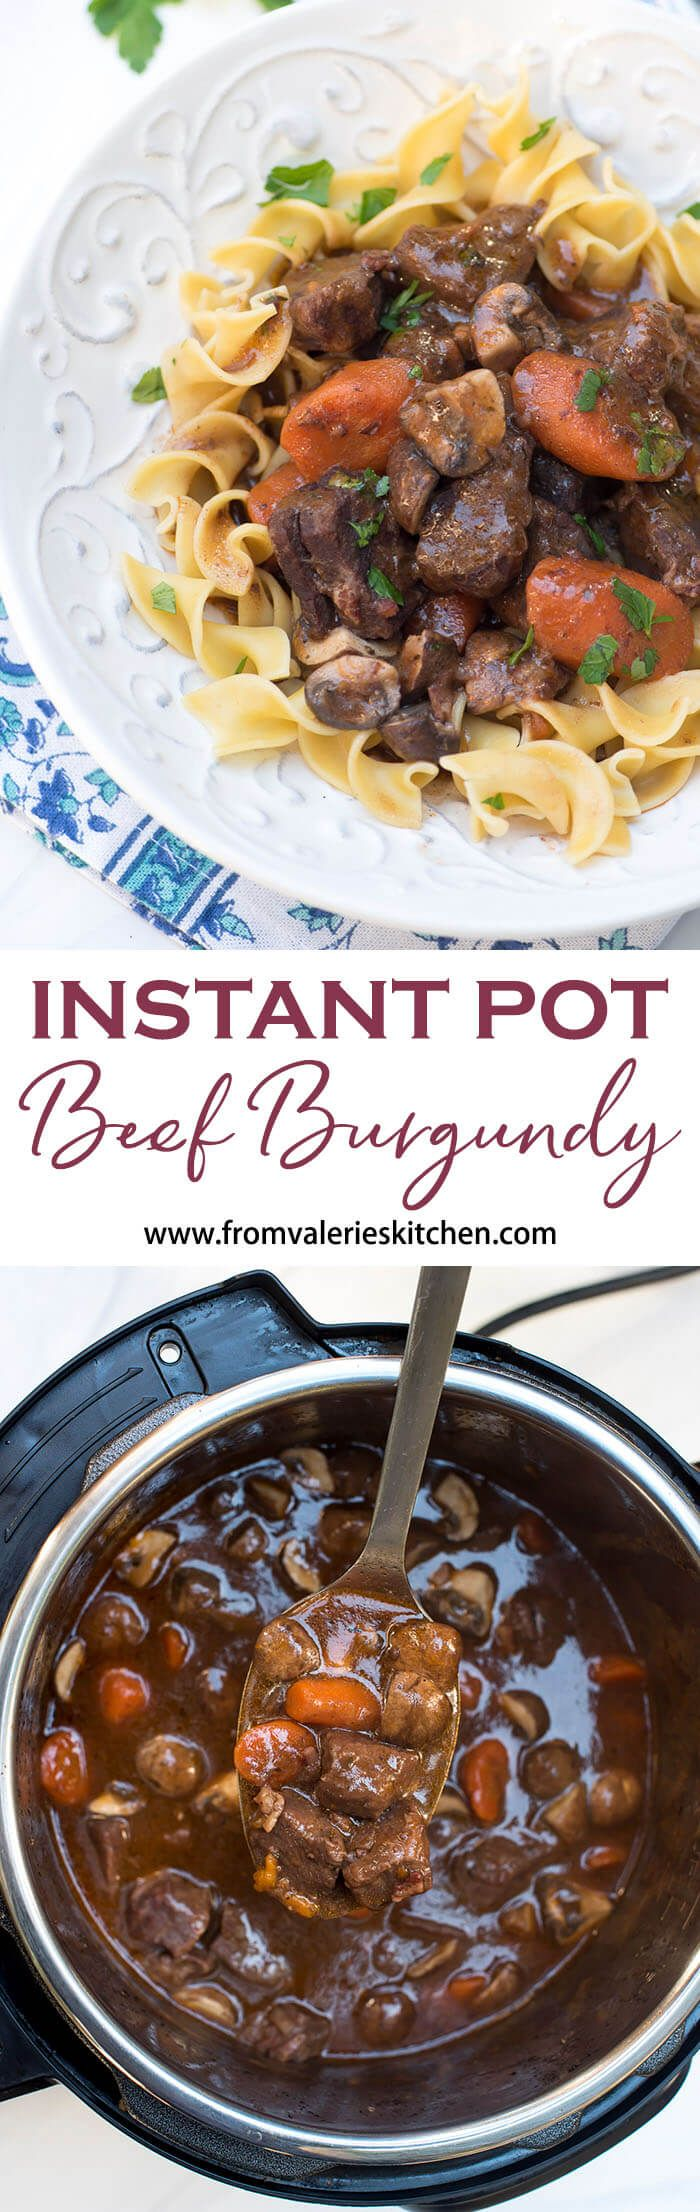 Your Instant Pot will help you create this luscious dish in a fraction of the time it would take using traditional methods. Instant Pot Beef Burgundy is rustic, flavorful and sure to impress.